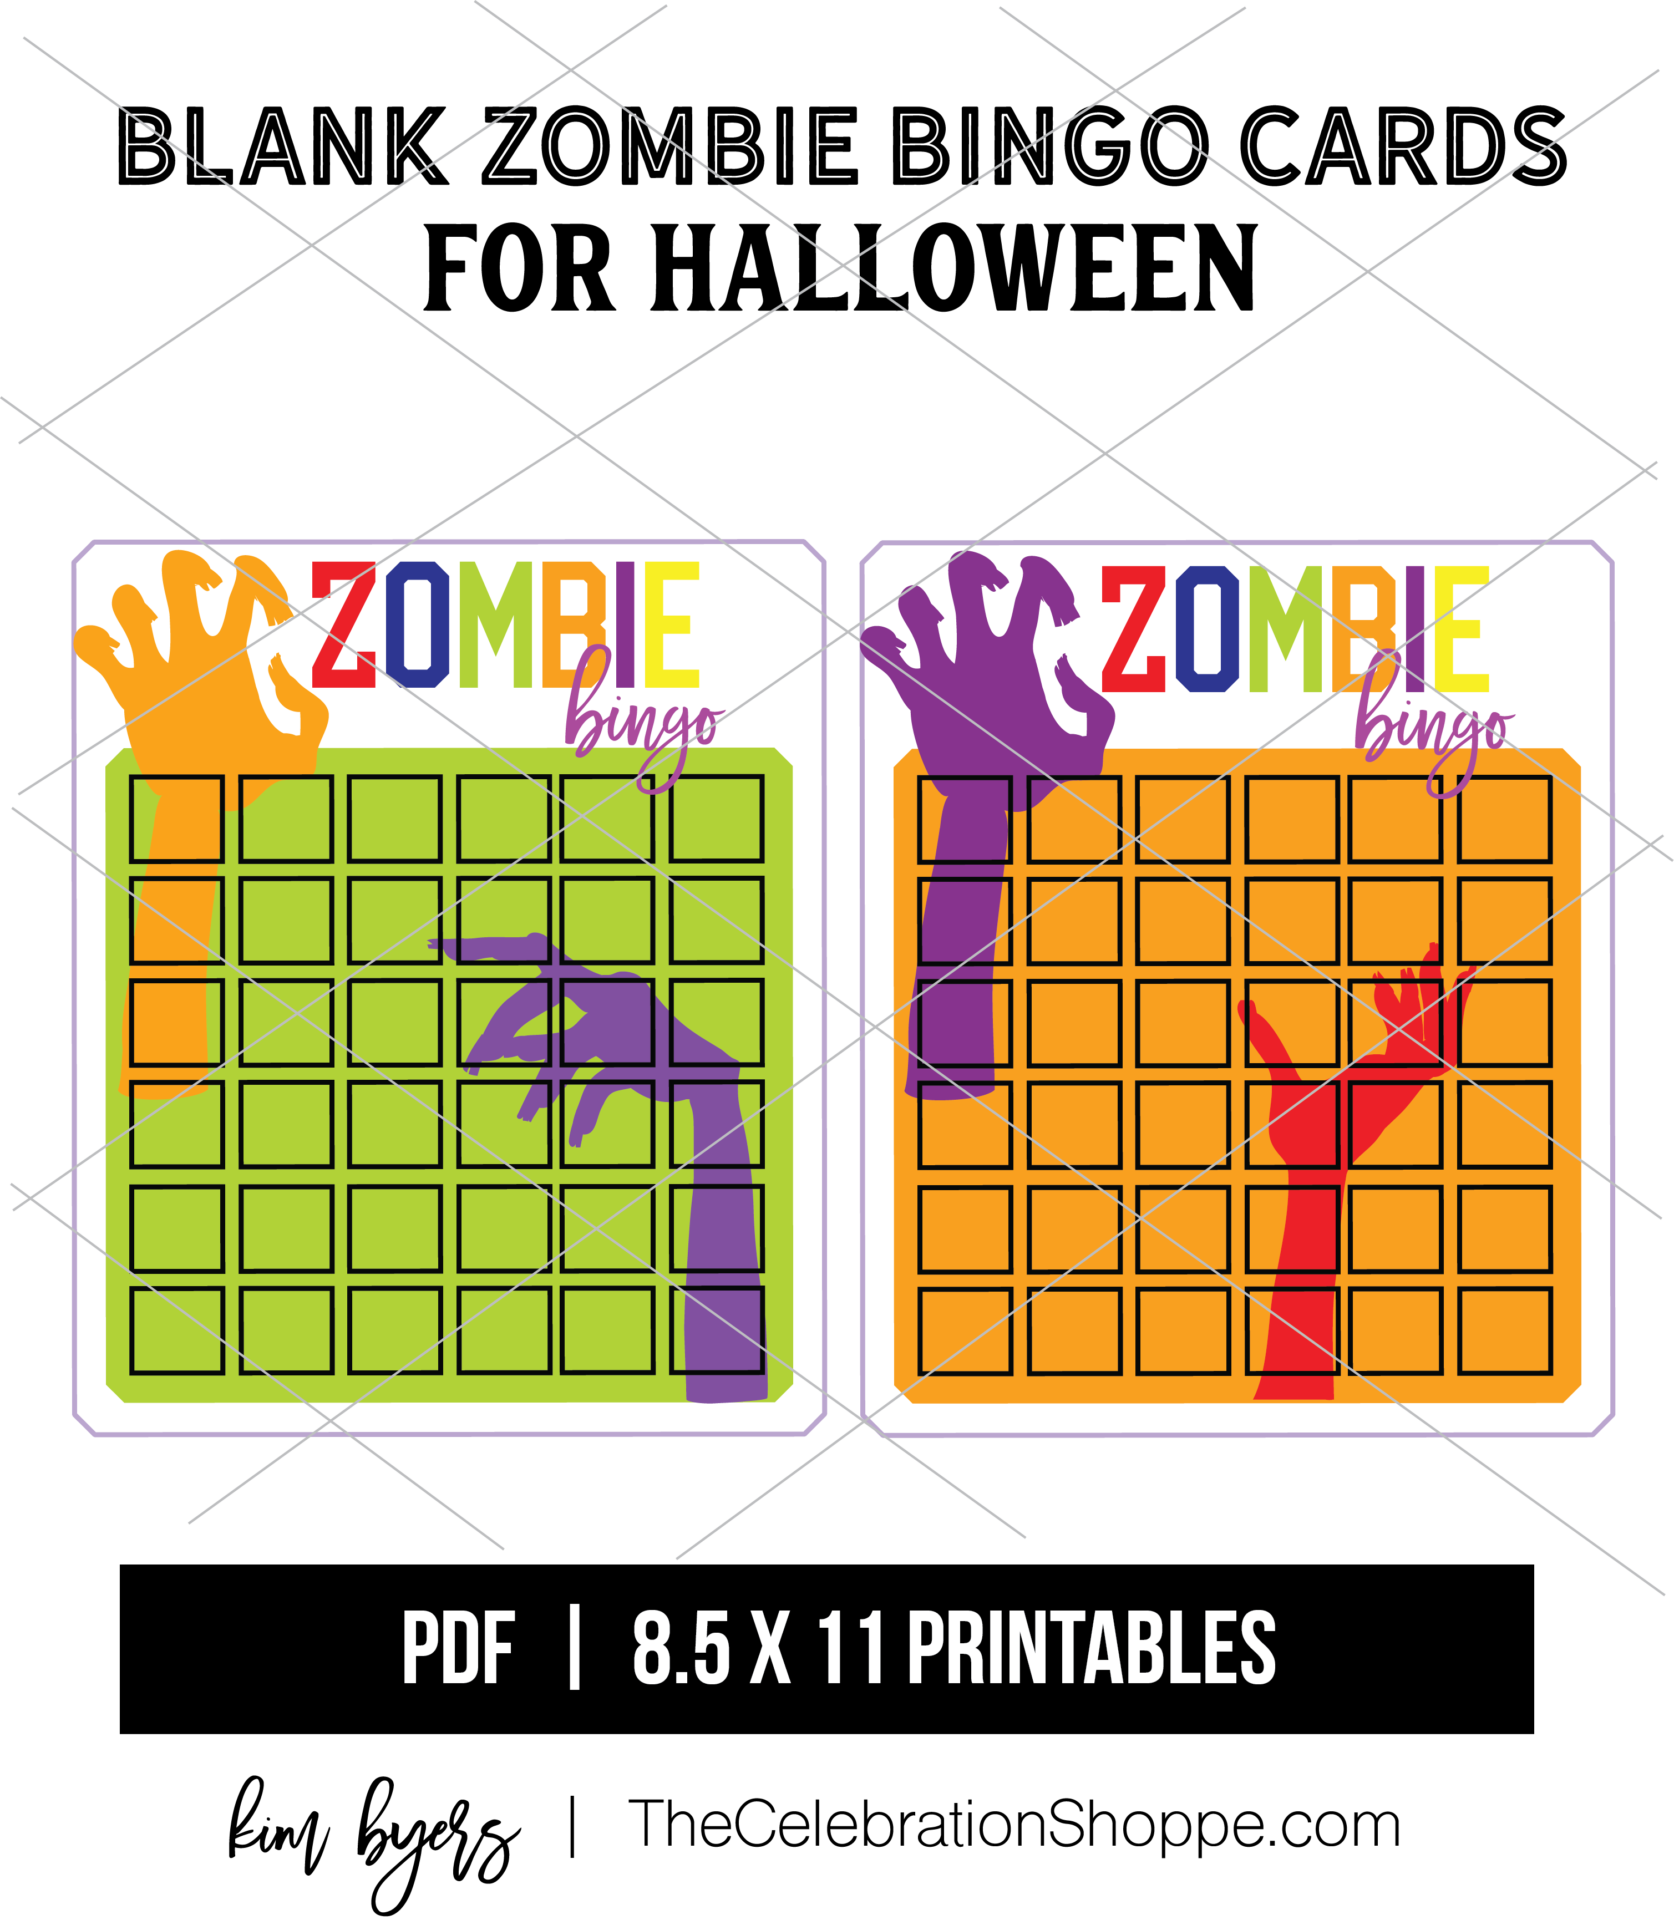 DOWNLOAD FREE Zombie Bingo Cards   Halloween Games   Crafting with Kim Byers at The Celebration Shoppe